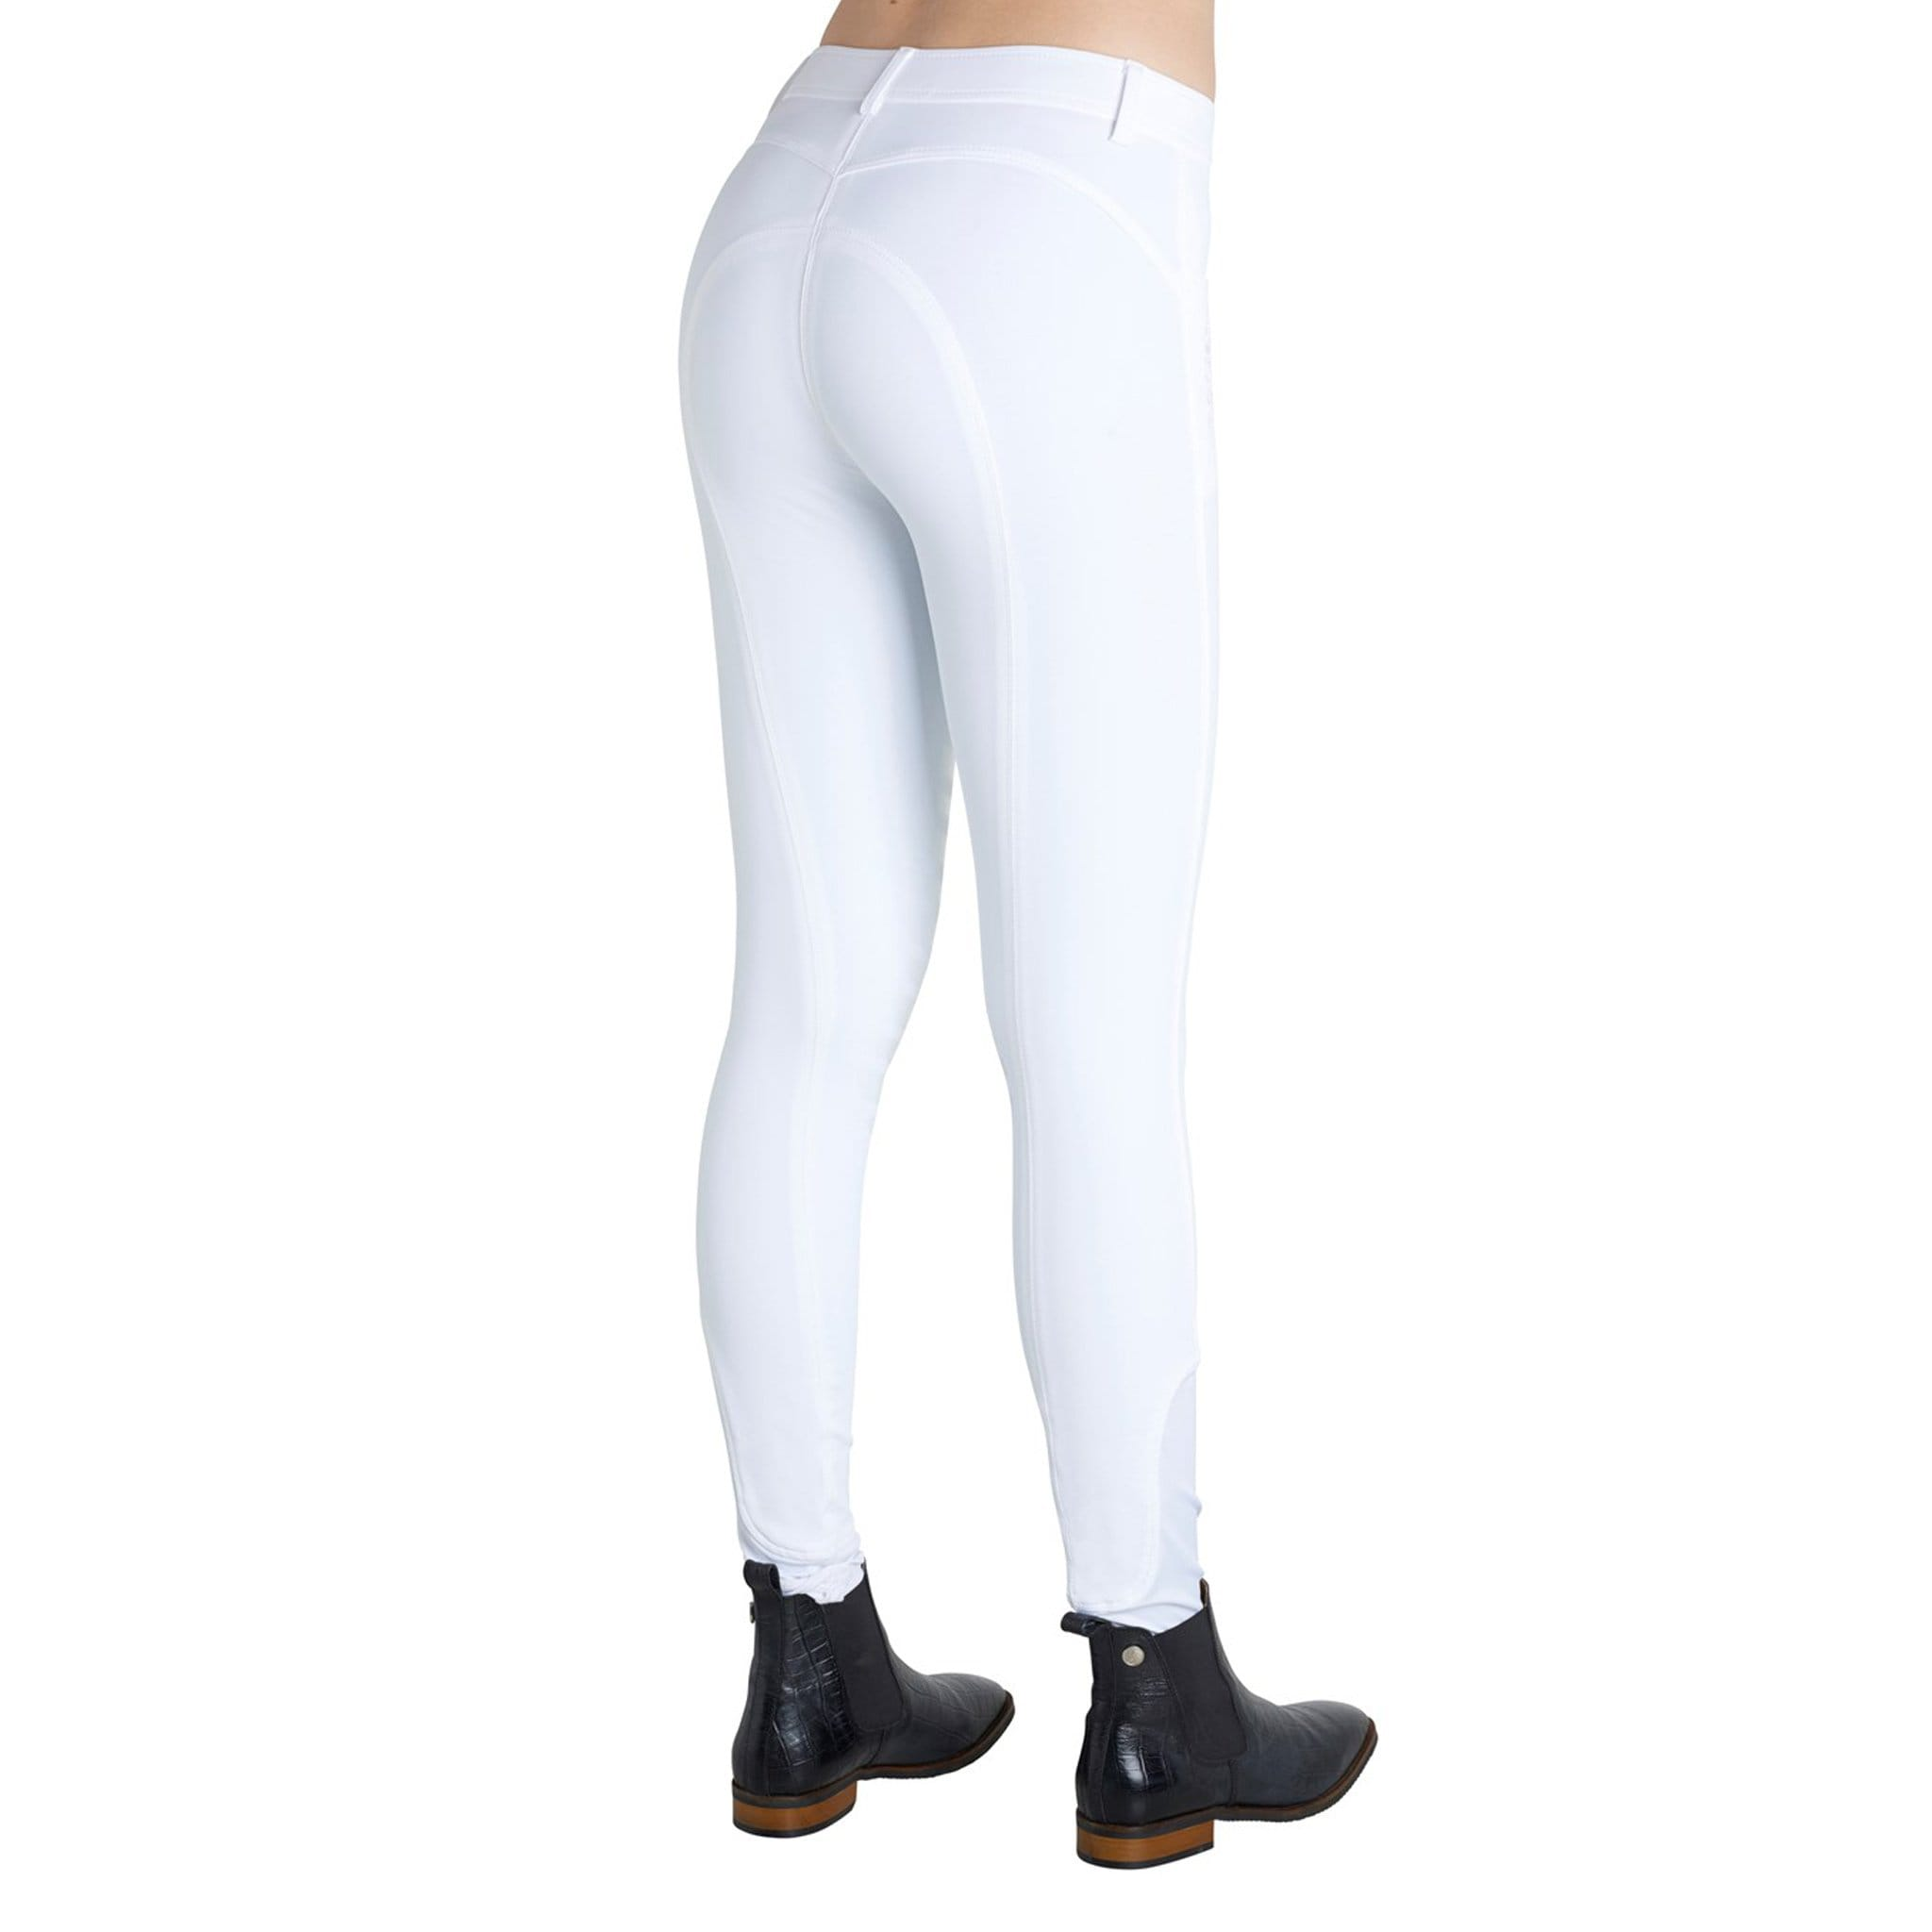 Montar Normal Waist Silicone Knee Patch Breeches 2077 White On Model